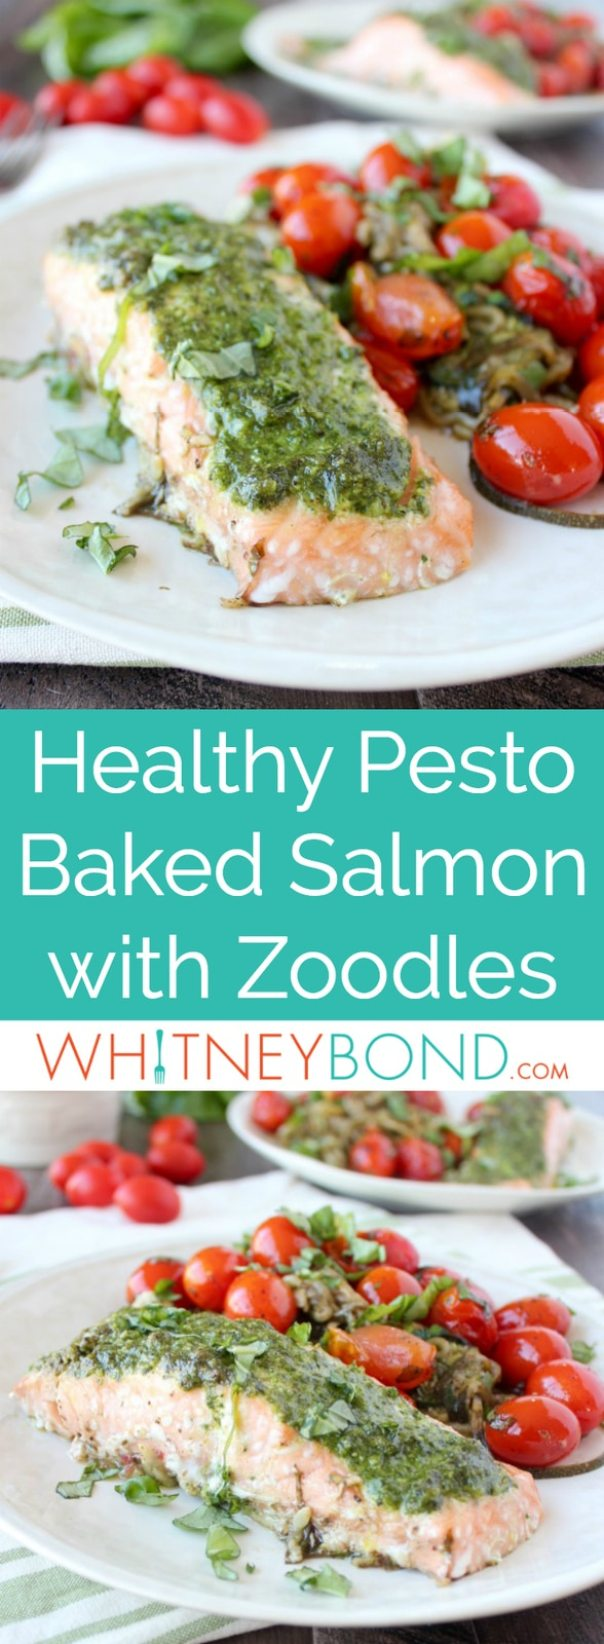 This gluten free recipe takes a healthy twist on the foil dinner with pesto baked salmon over zucchini noodles, topped with balsamic basil cherry tomatoes.